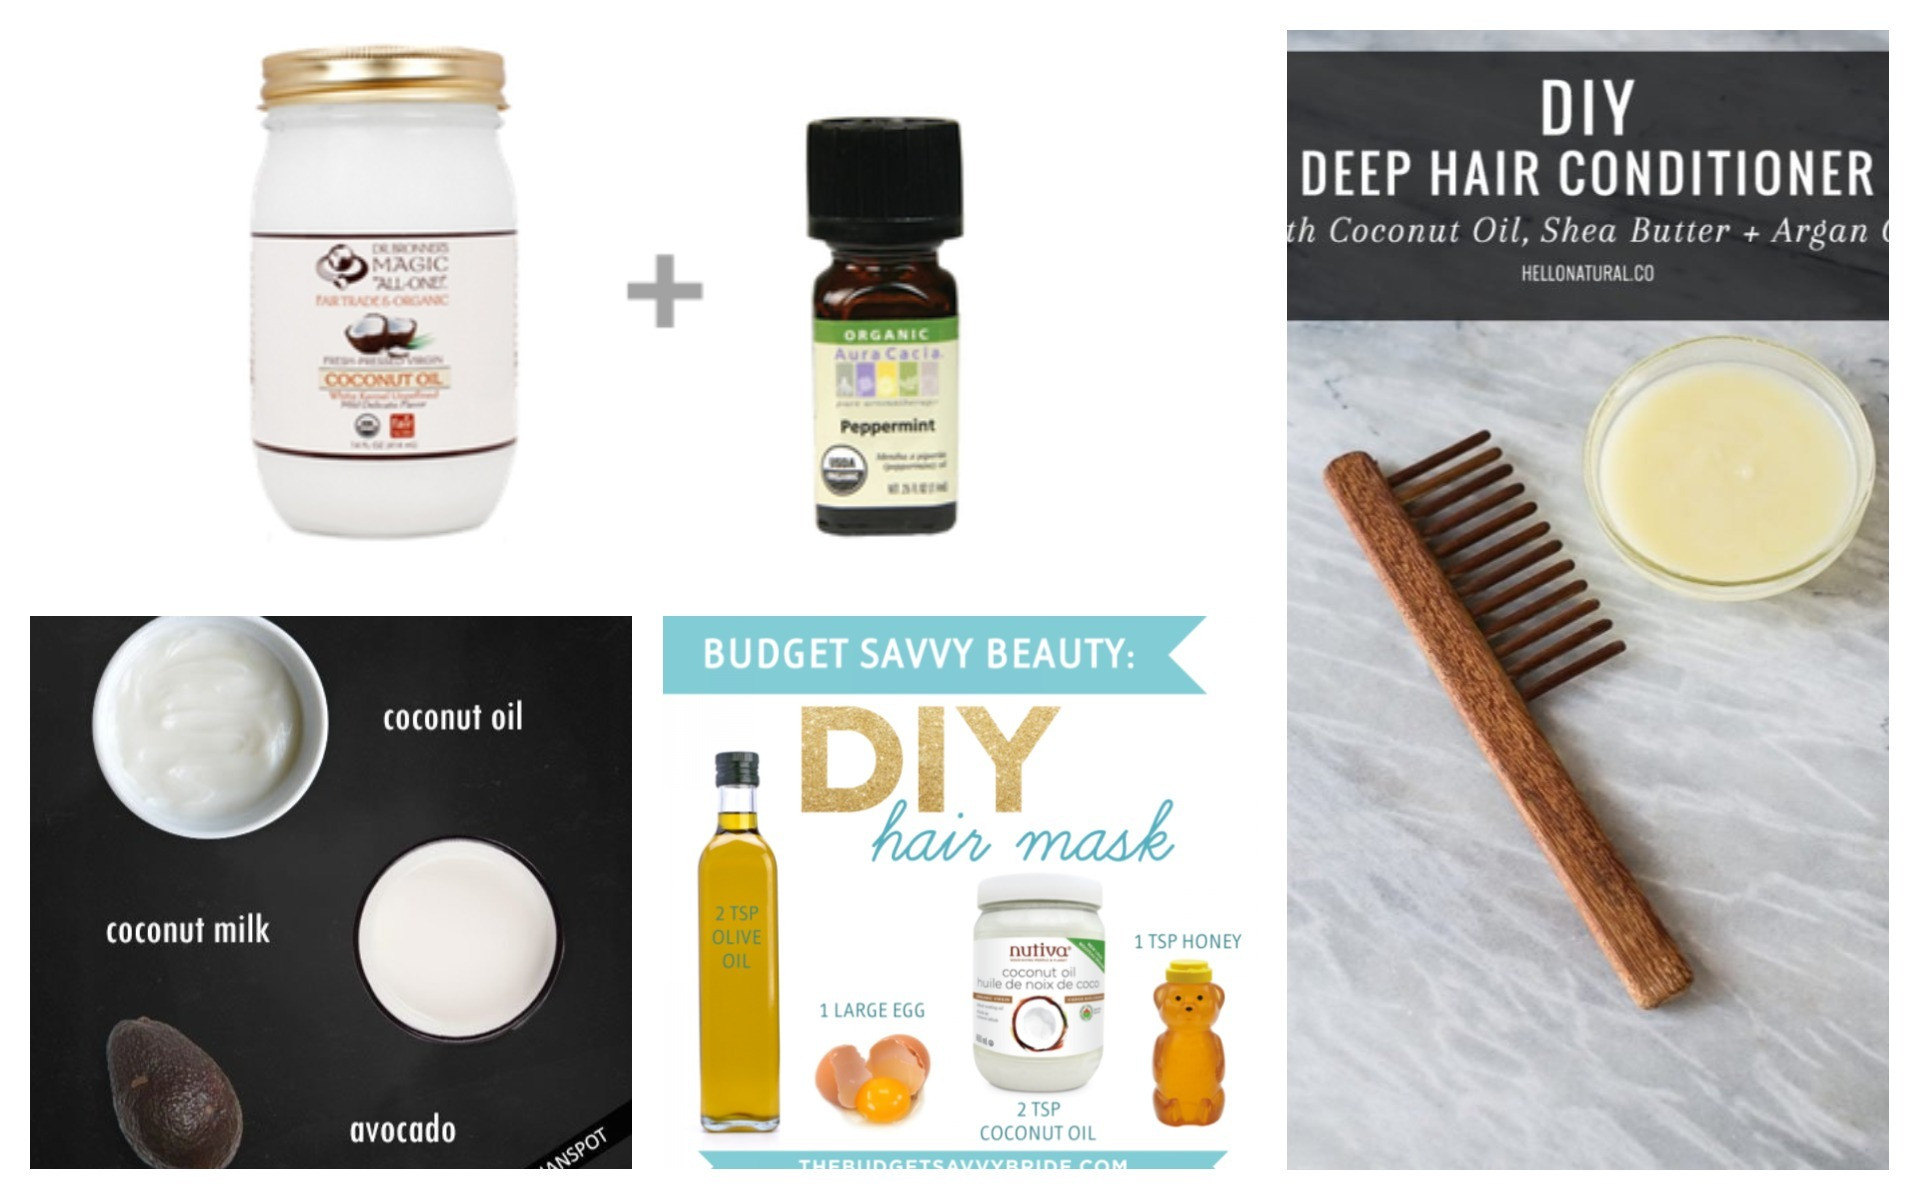 Best ideas about Argan Oil Hair Mask DIY . Save or Pin The Best Homemade Coconut Oil Masks For Hair Repair Now.